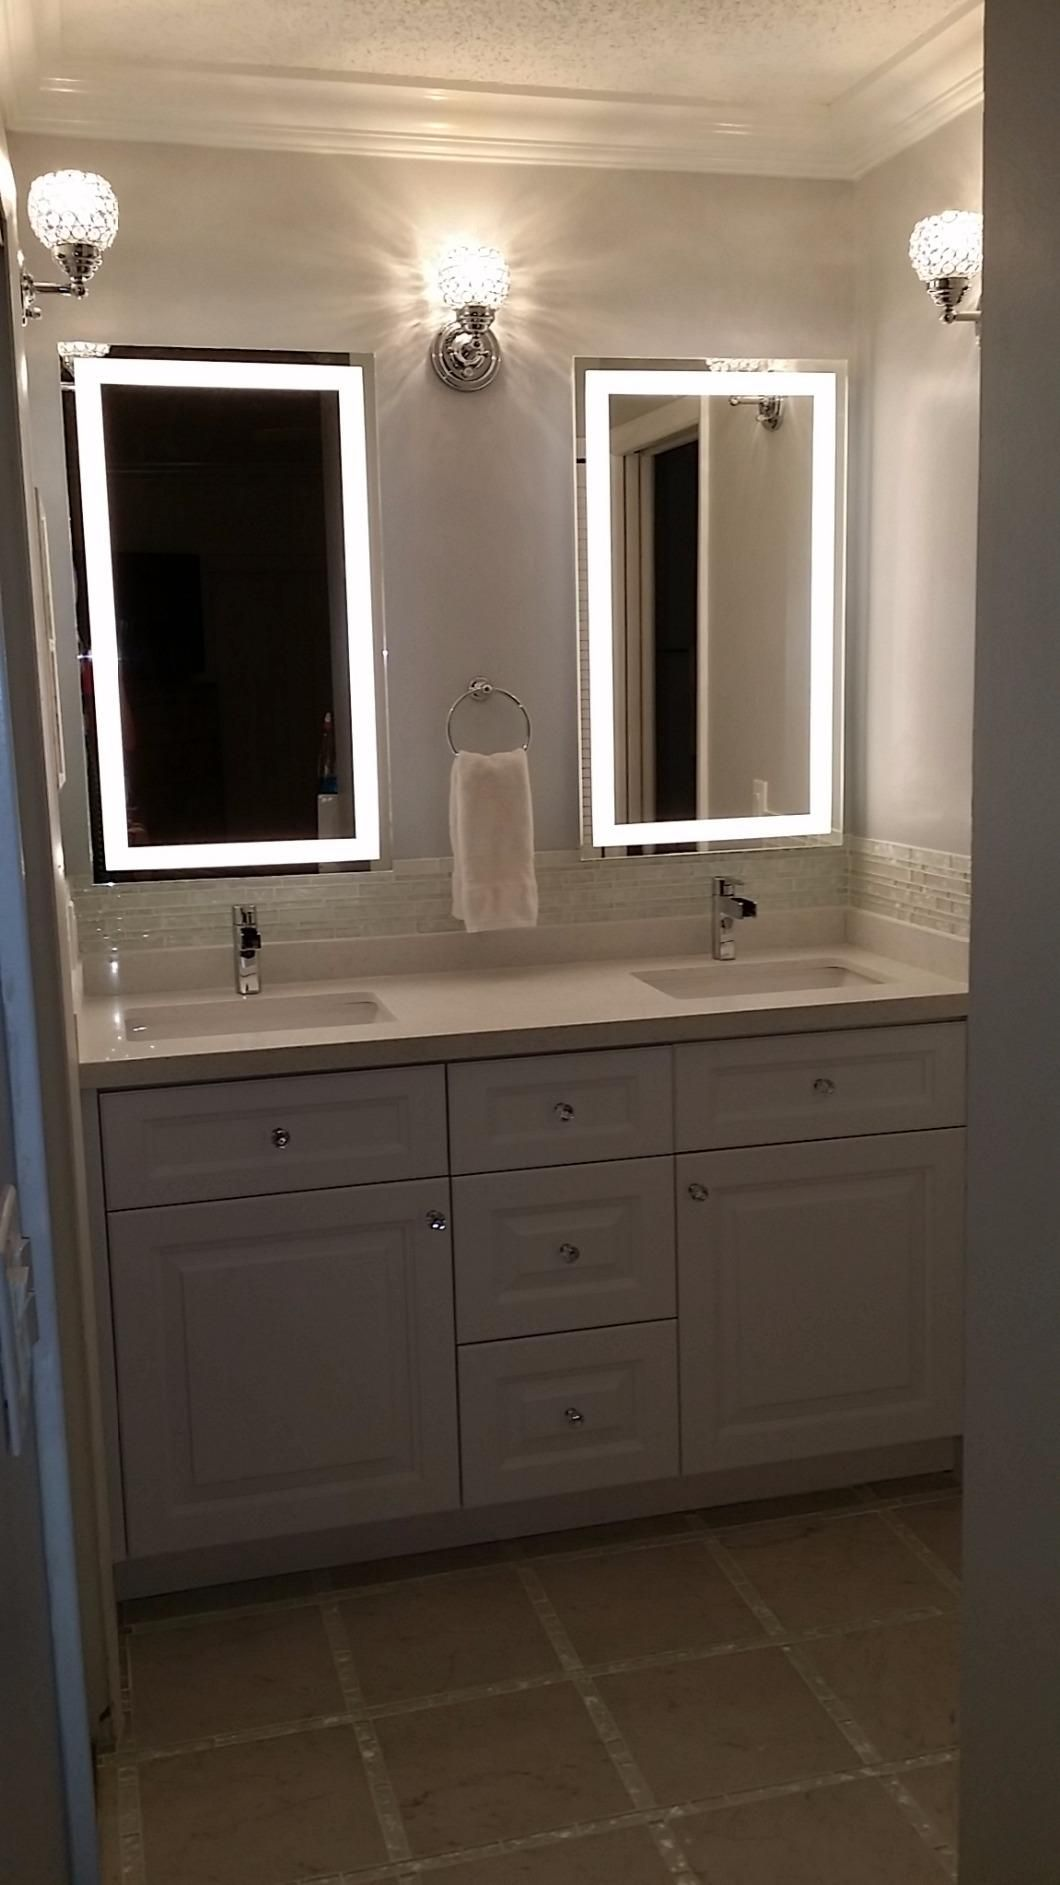 Amazon Com Lighted Led Frameless Backlit Wall Mirror